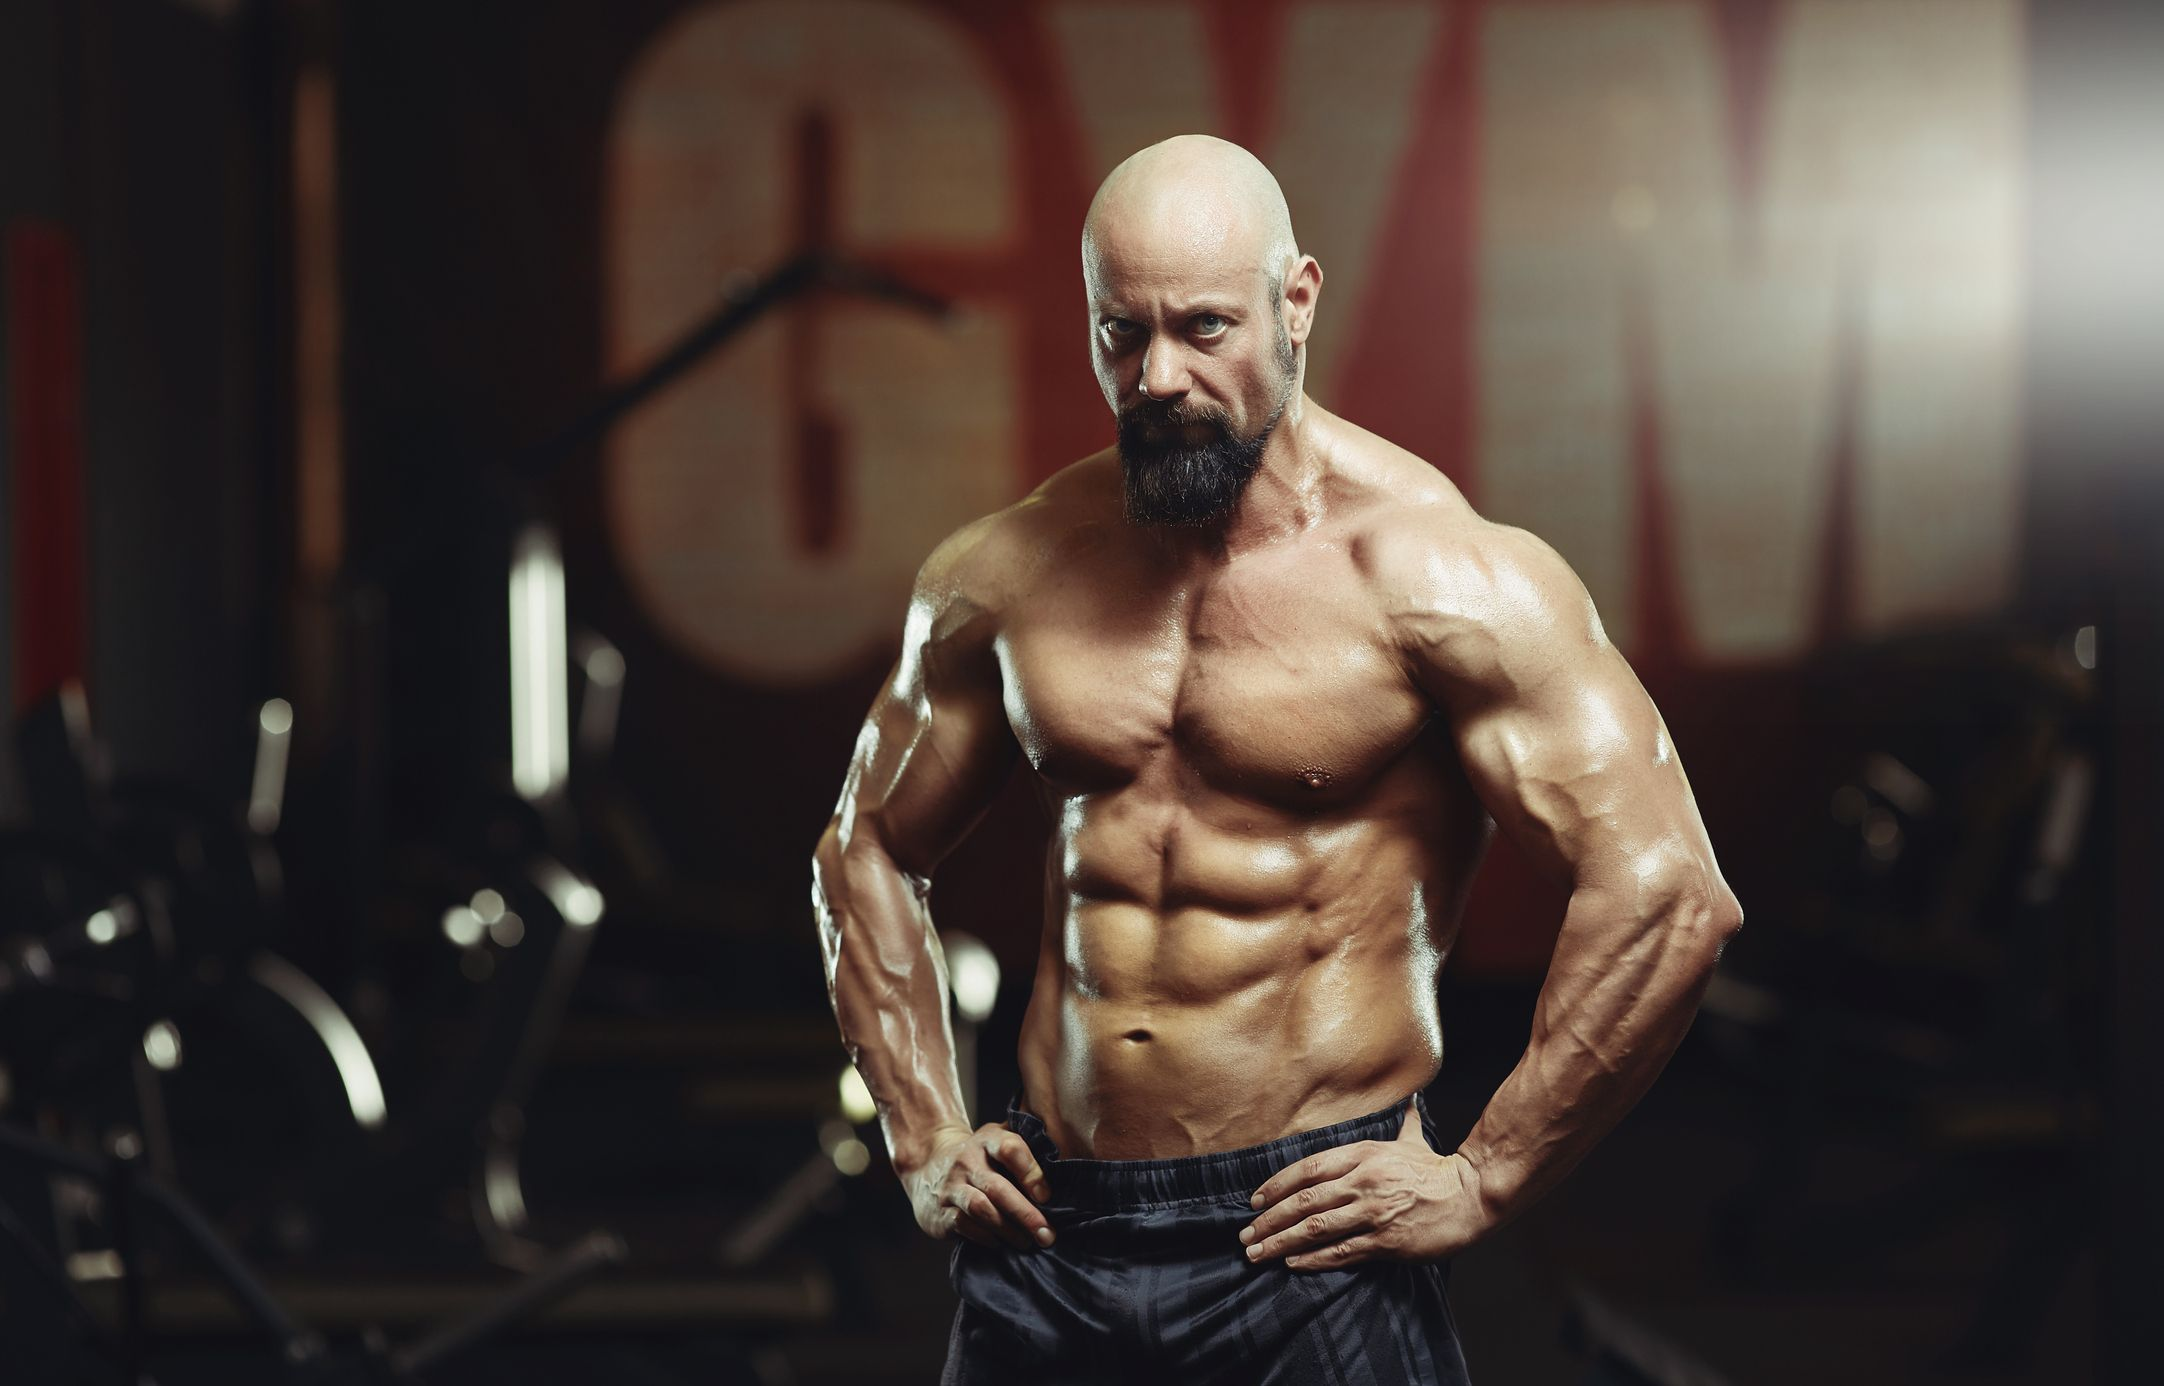 The Best Chest and Abs Circuit for Men Over 40